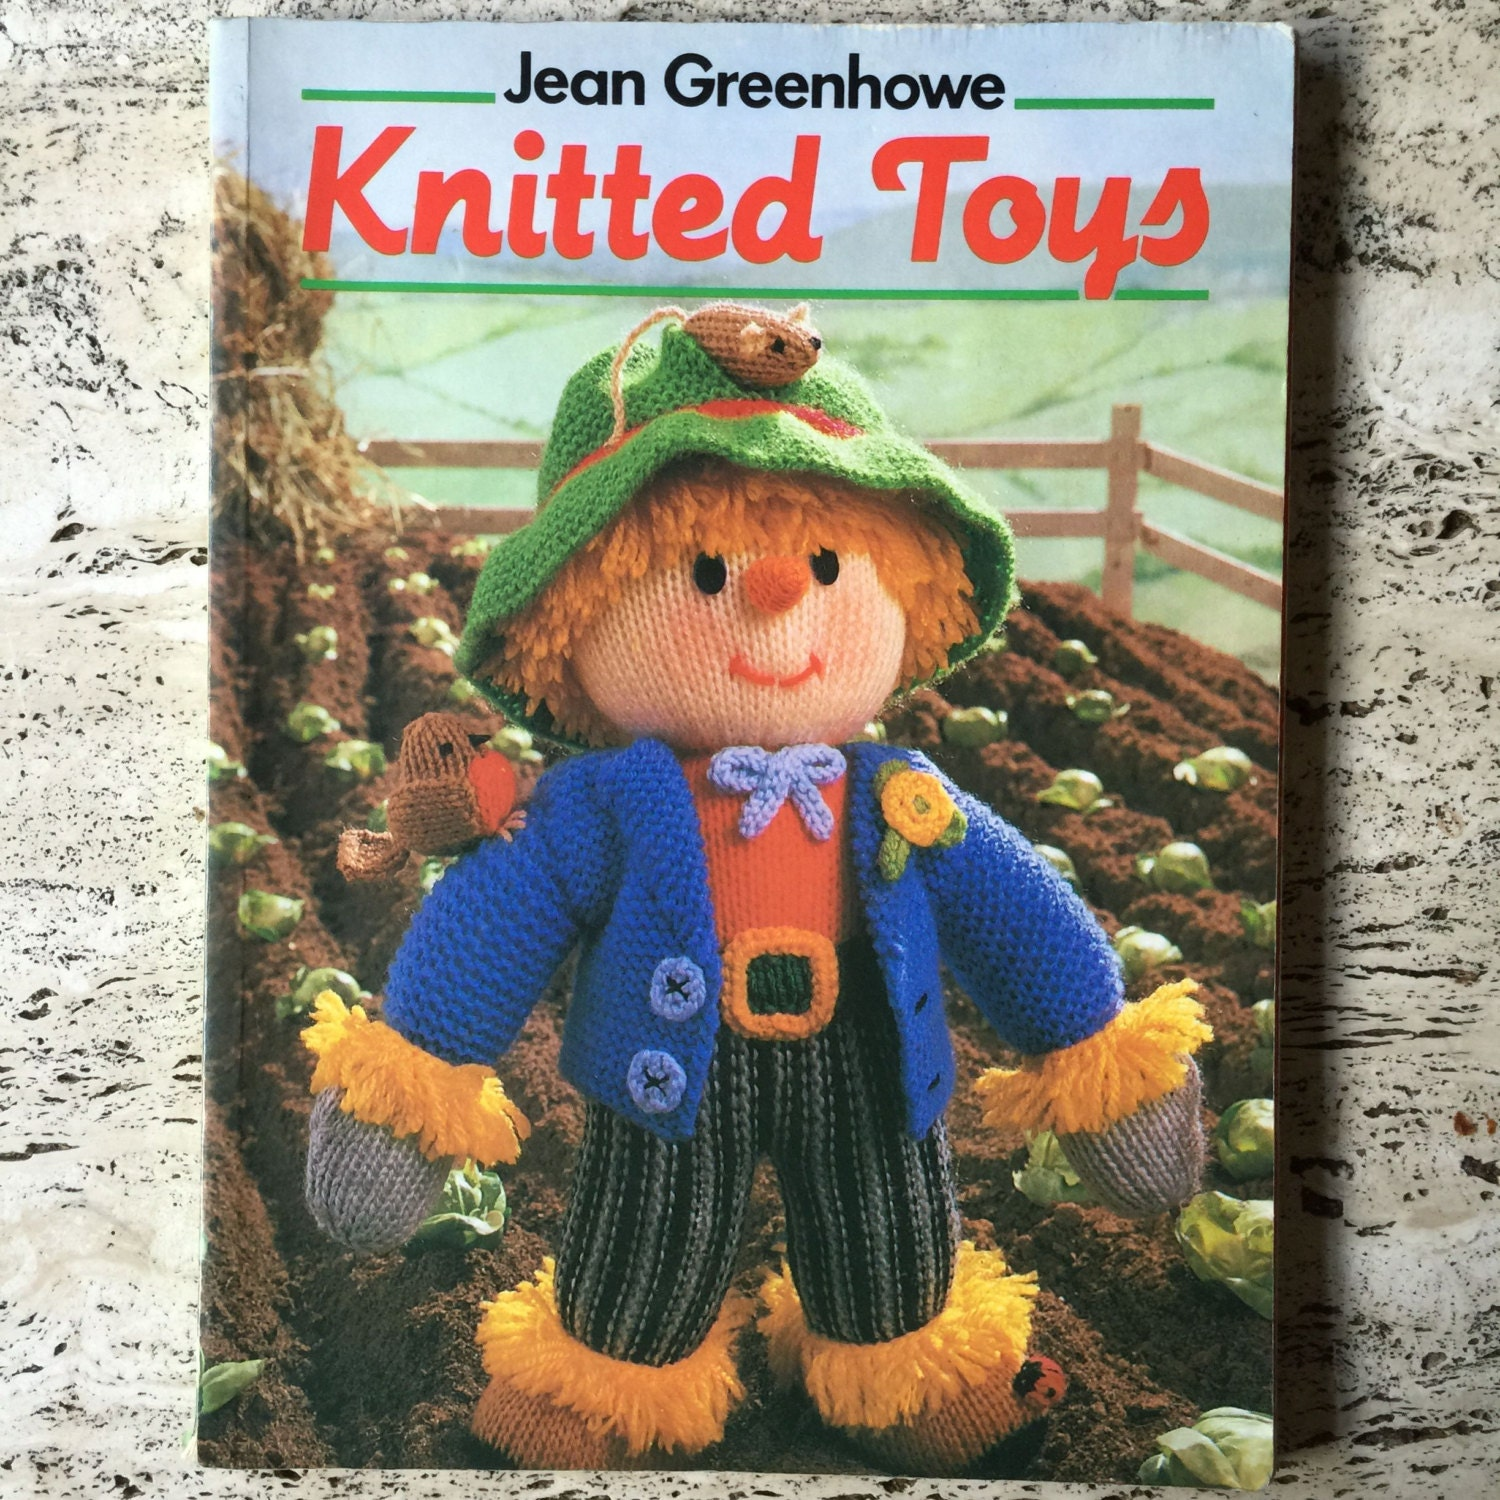 Knitting Patterns Toys Jean Greenhowe : Knitted toys jean greenhowe s